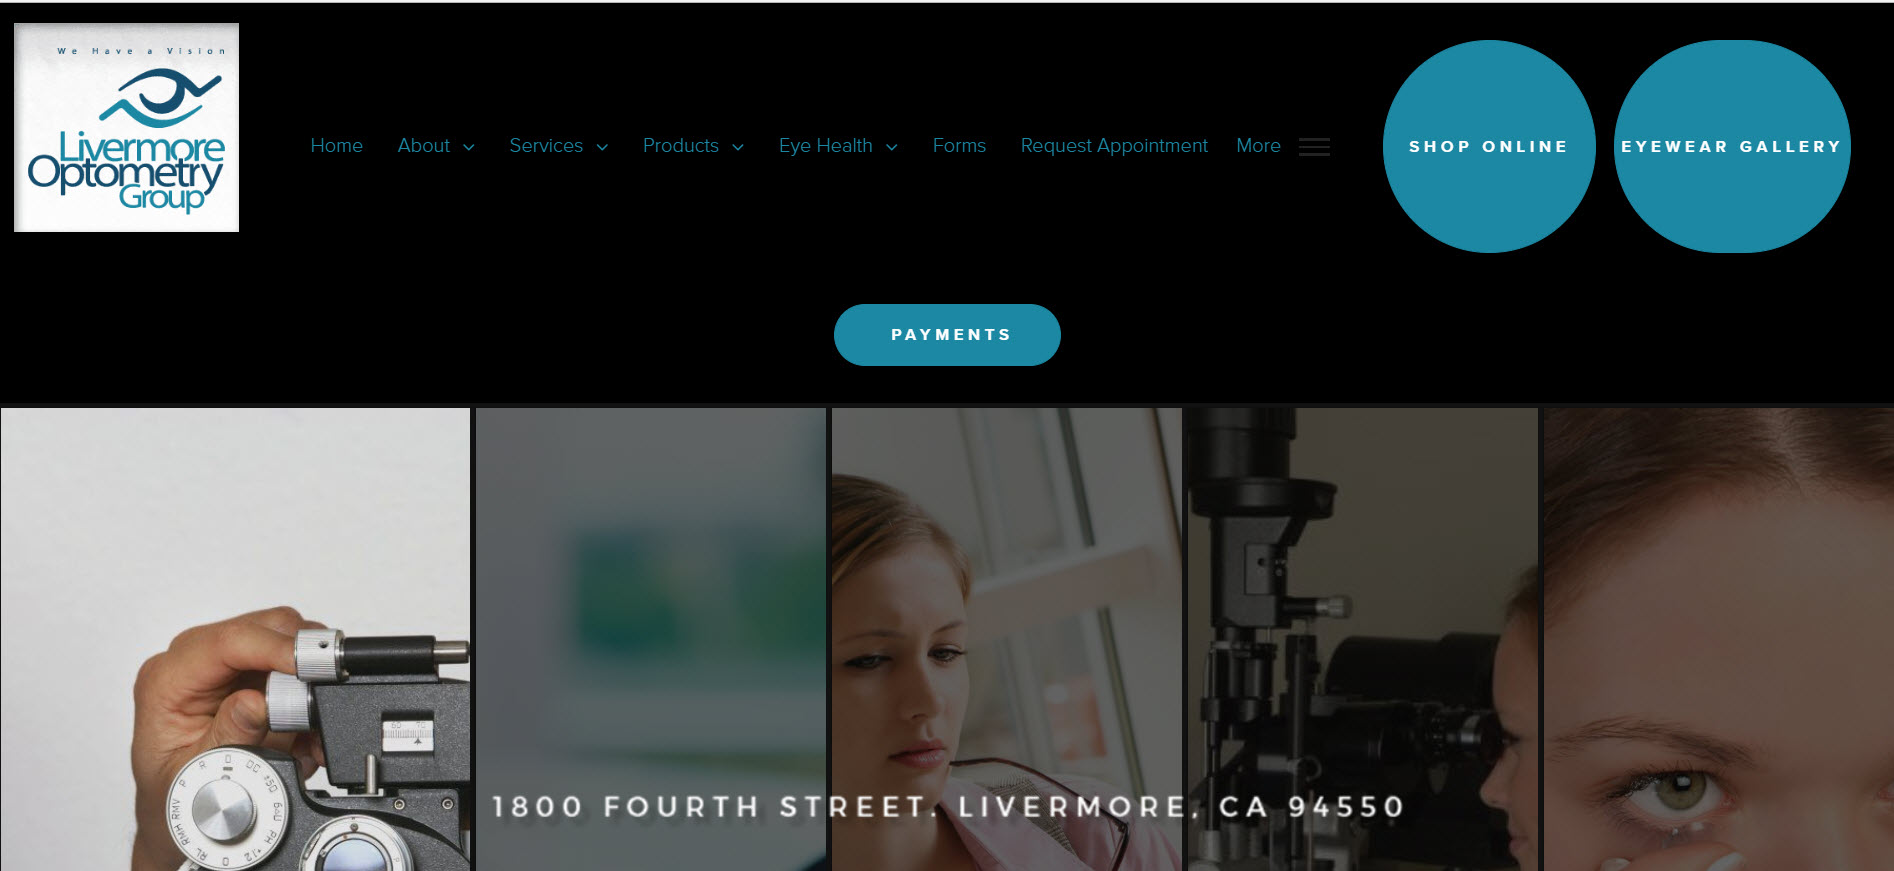 Livermore Optometry's data driven approach to online retail and using My Frame Gallery